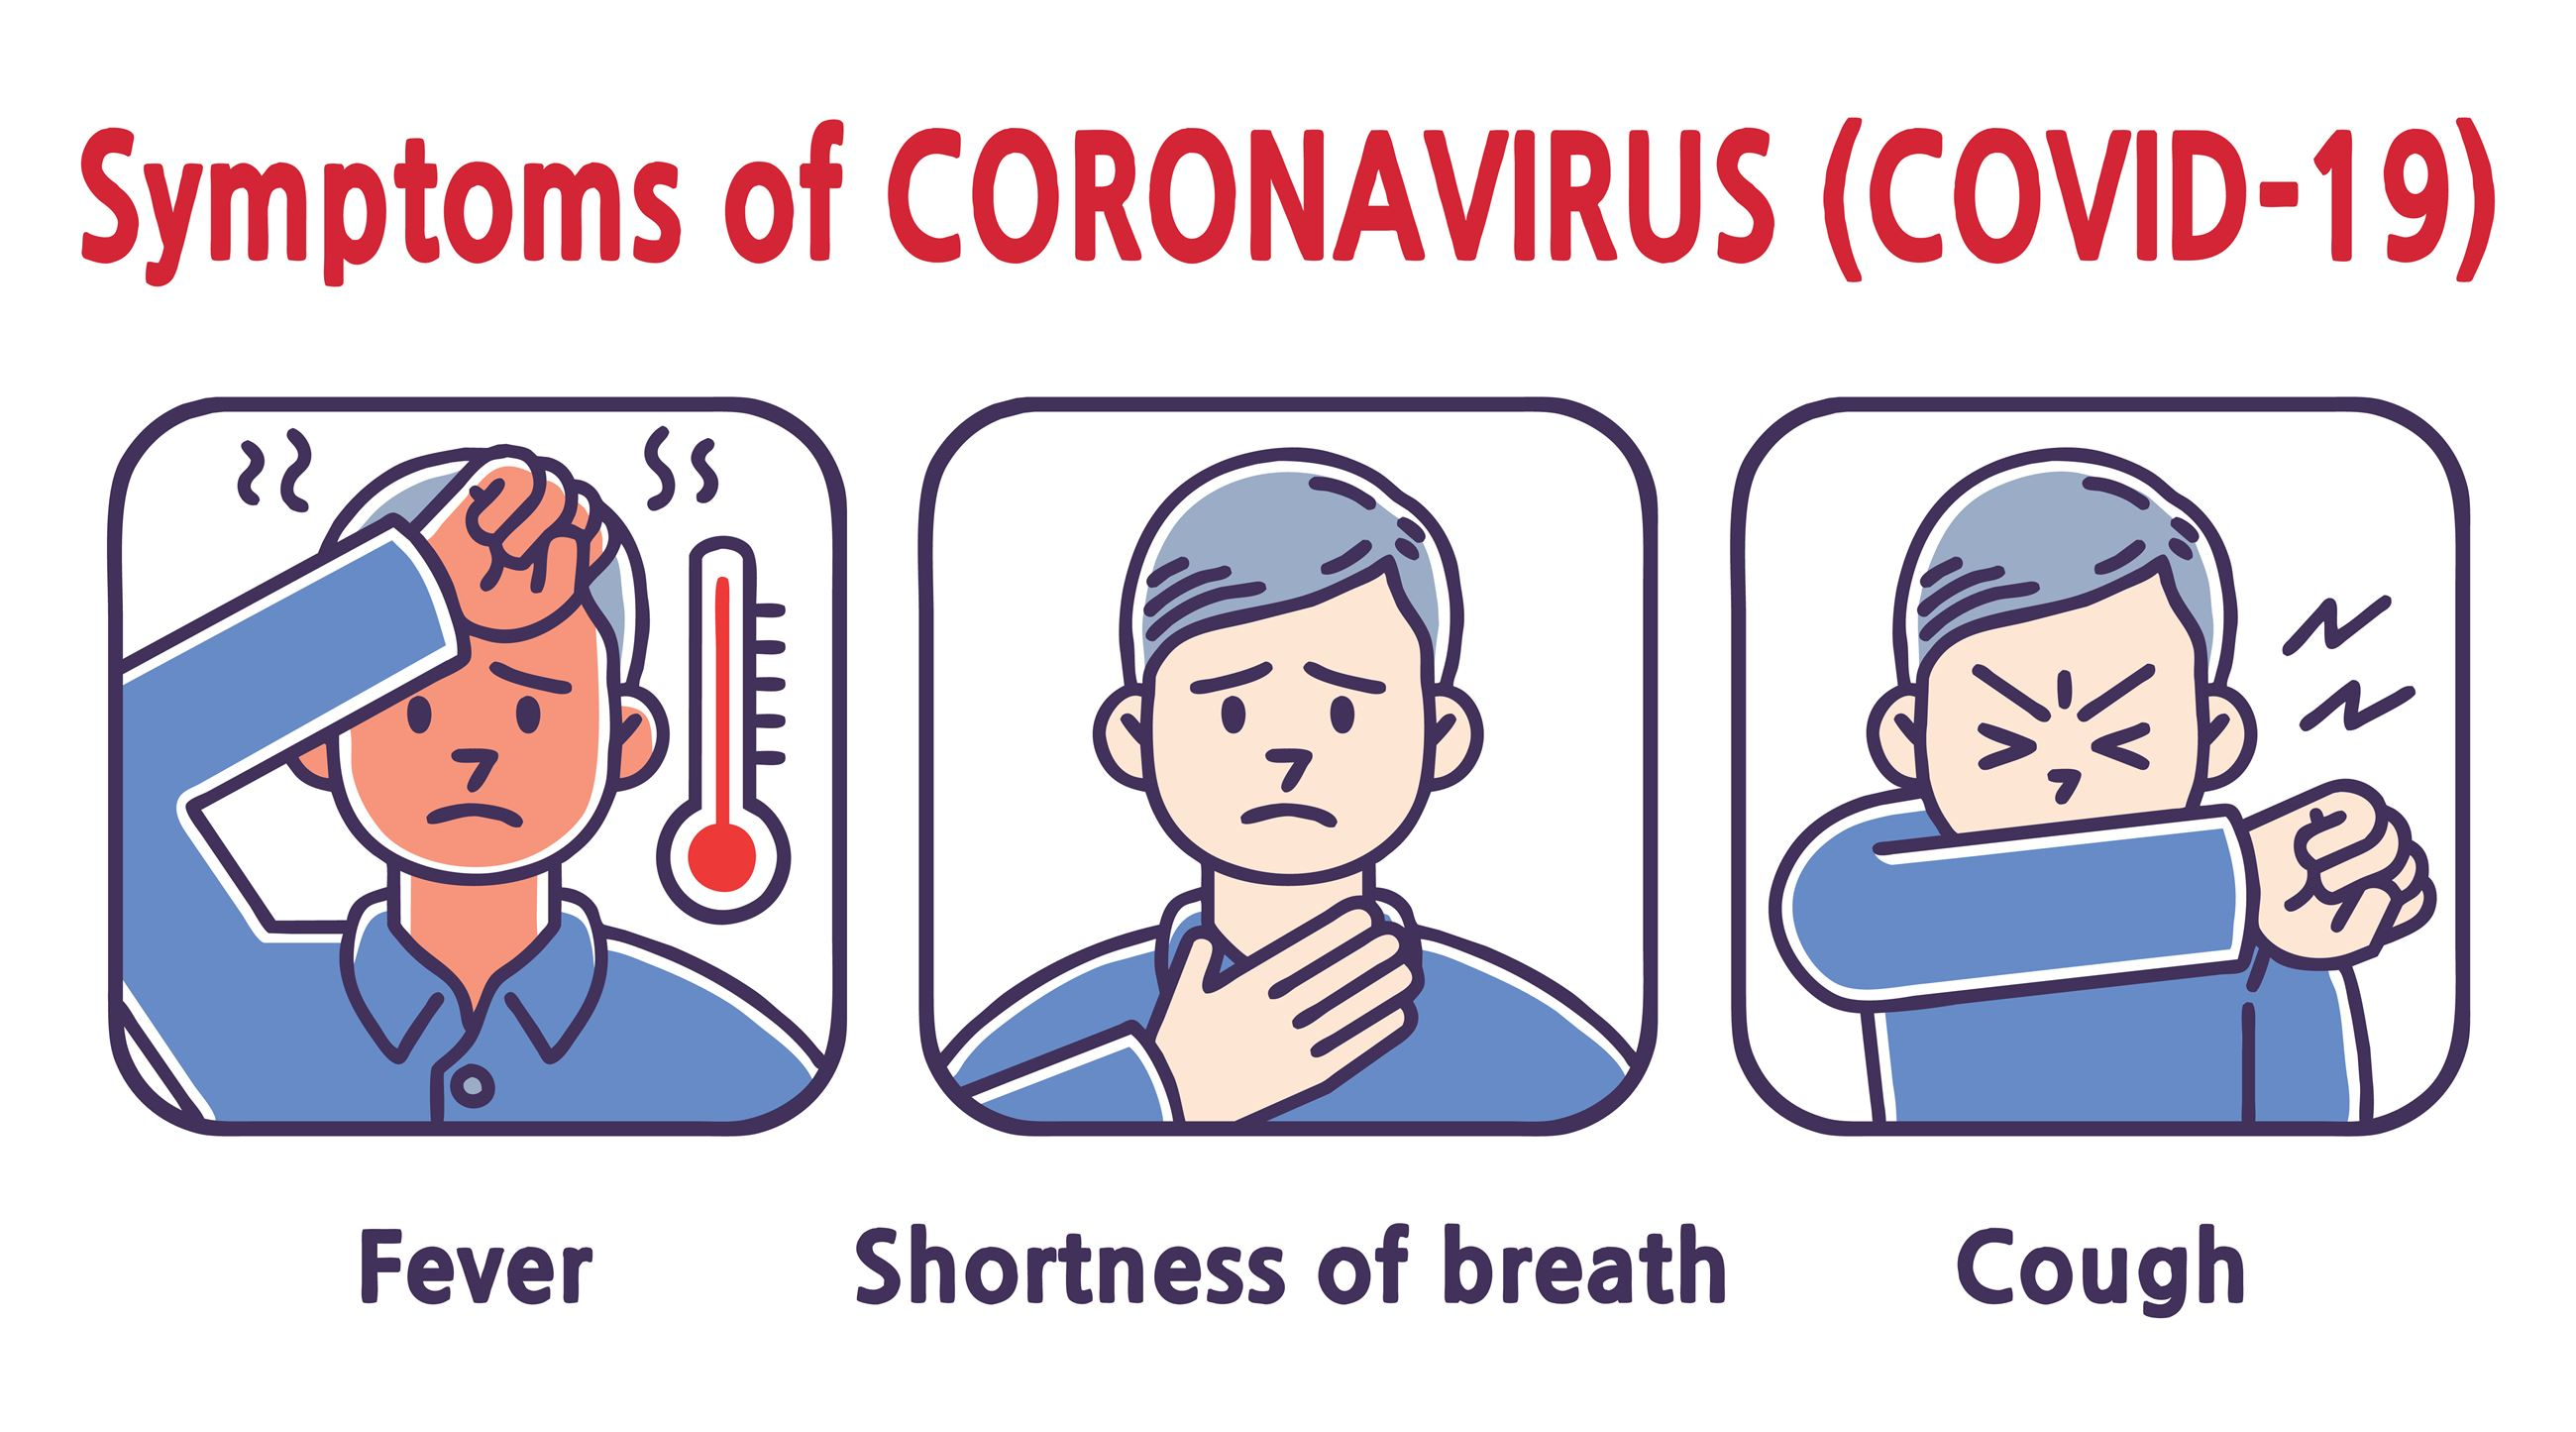 Symptoms of Coronavirus are fever, shortness of breath, cough